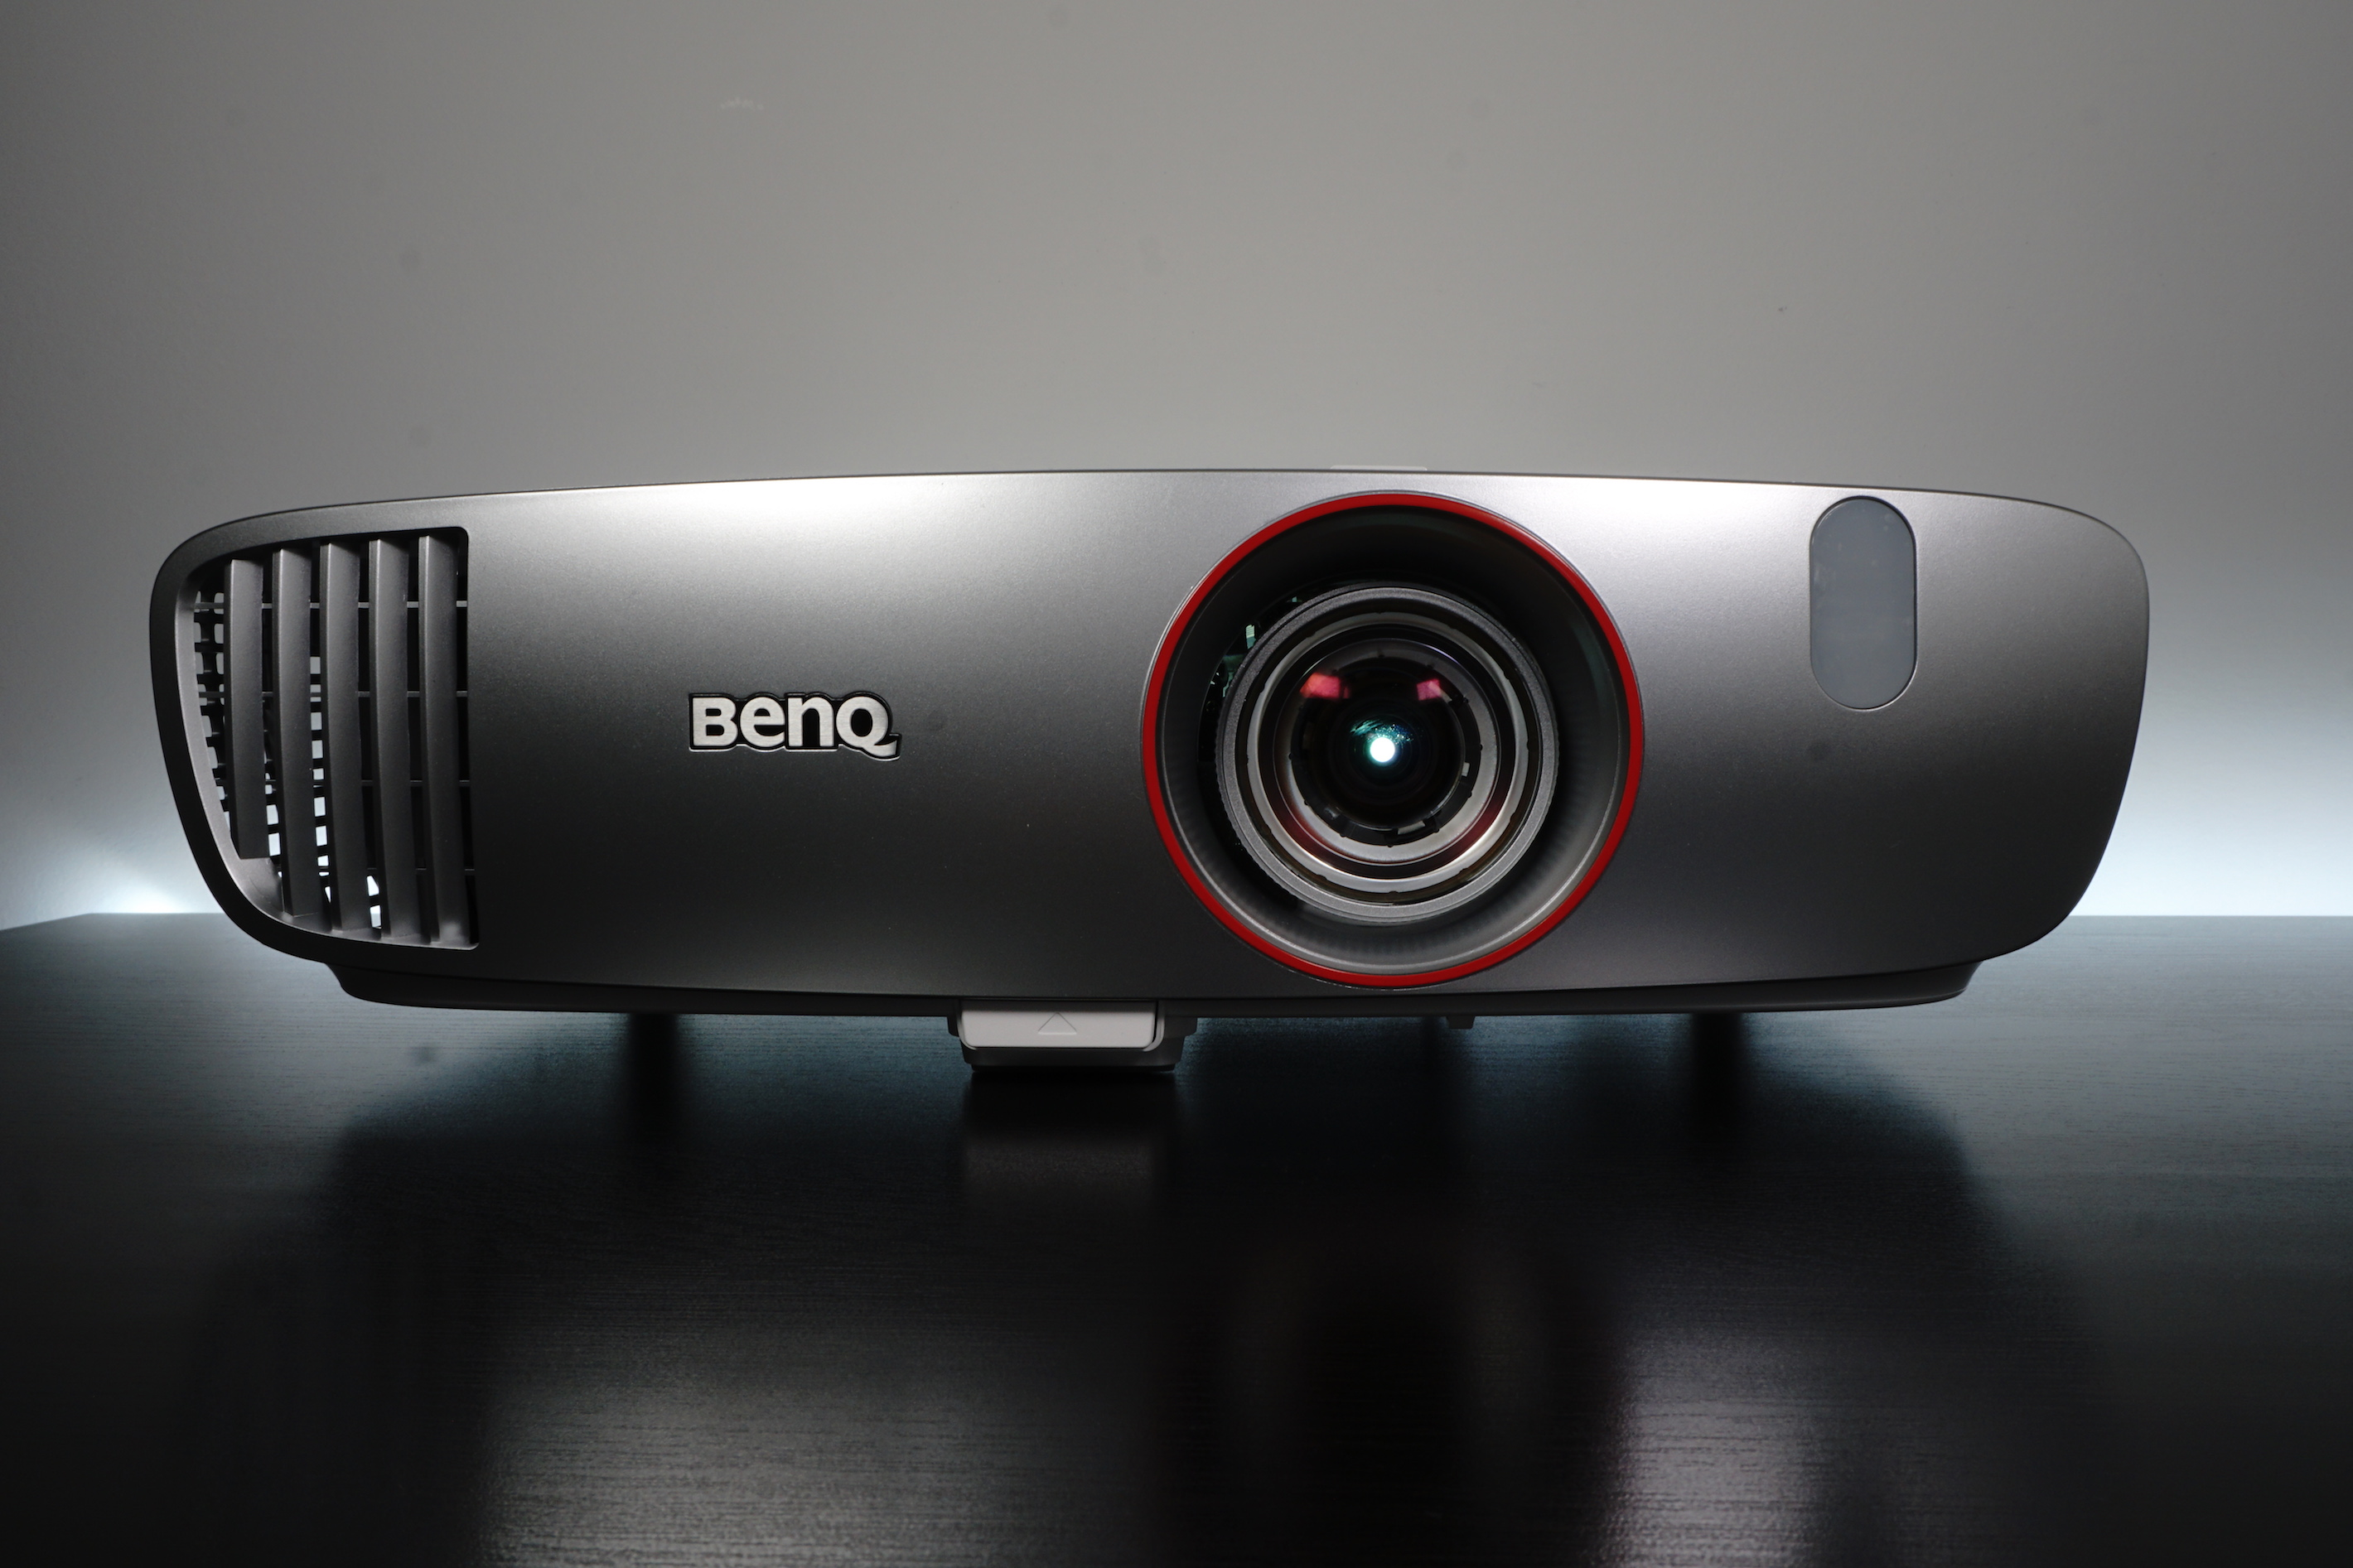 Benq ht2150st home theatre projector review best buy blog for Projector tv reviews